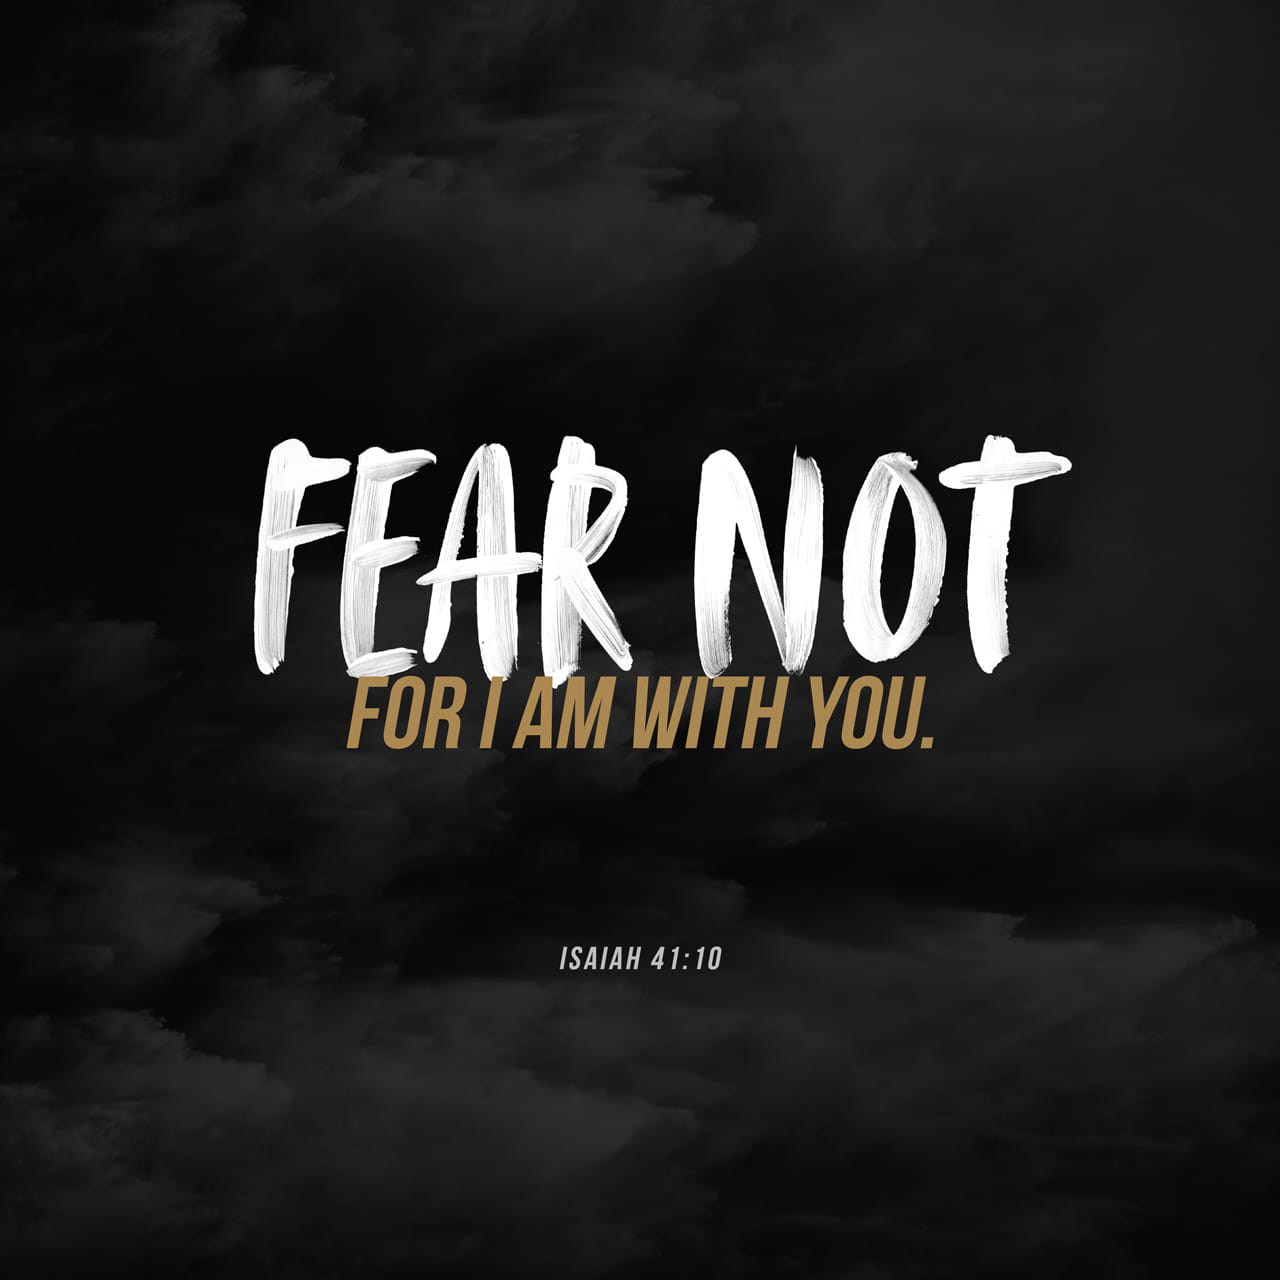 Isaiah 41:10 So do not fear, for I am with you; do not be dismayed, for I am your God. I will strengthen you and help you; I will uphold you with my righteous right hand. | New International Version (NIV)